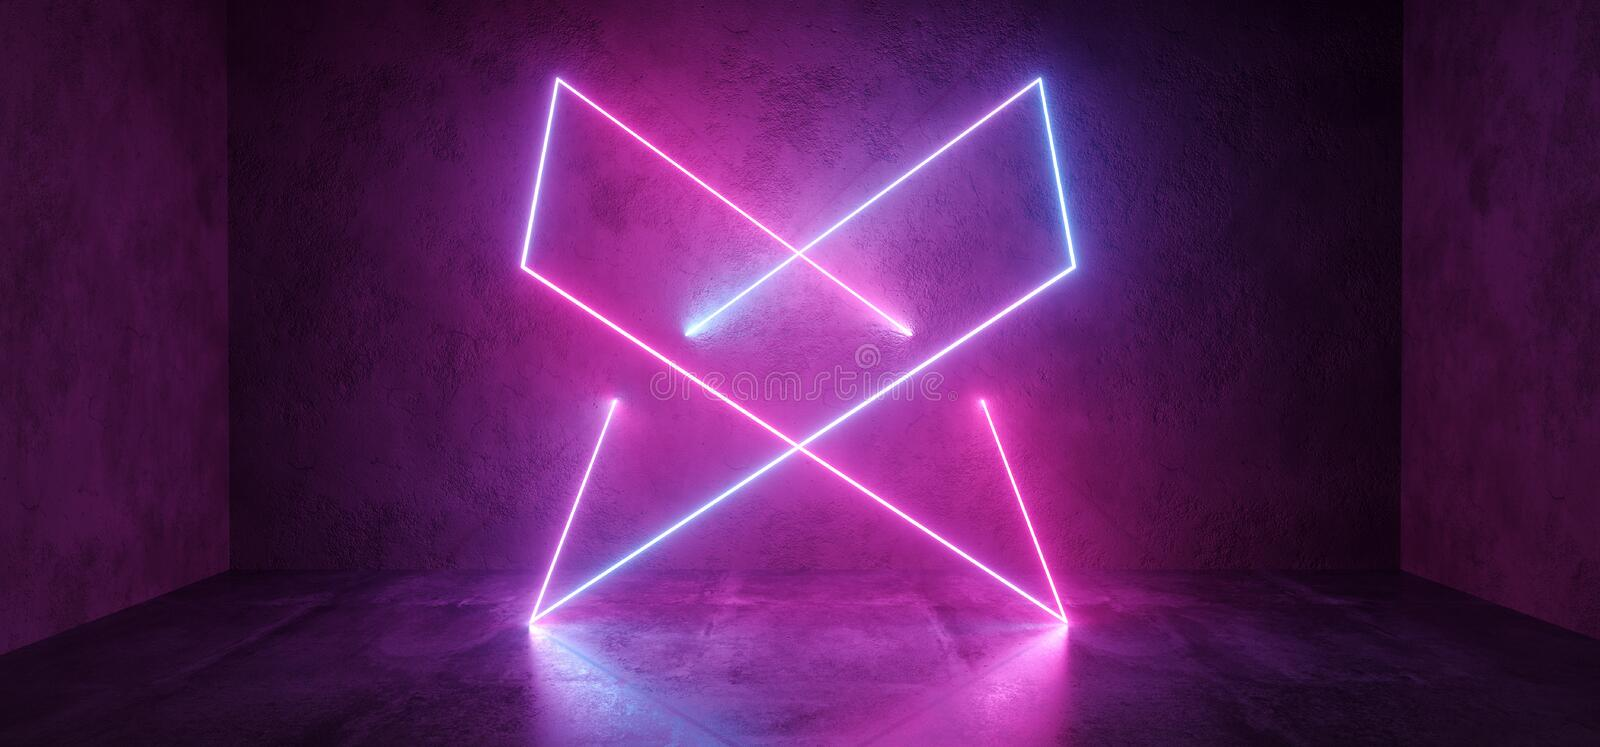 Sci Fi Futuristic Retro Modern Elegant Abstract Rectangle Crossed Neon Shapes Glowing Purple Blue Pink On Grunge Concrete Walls. Club Stage Concrete Floor. 3D stock illustration